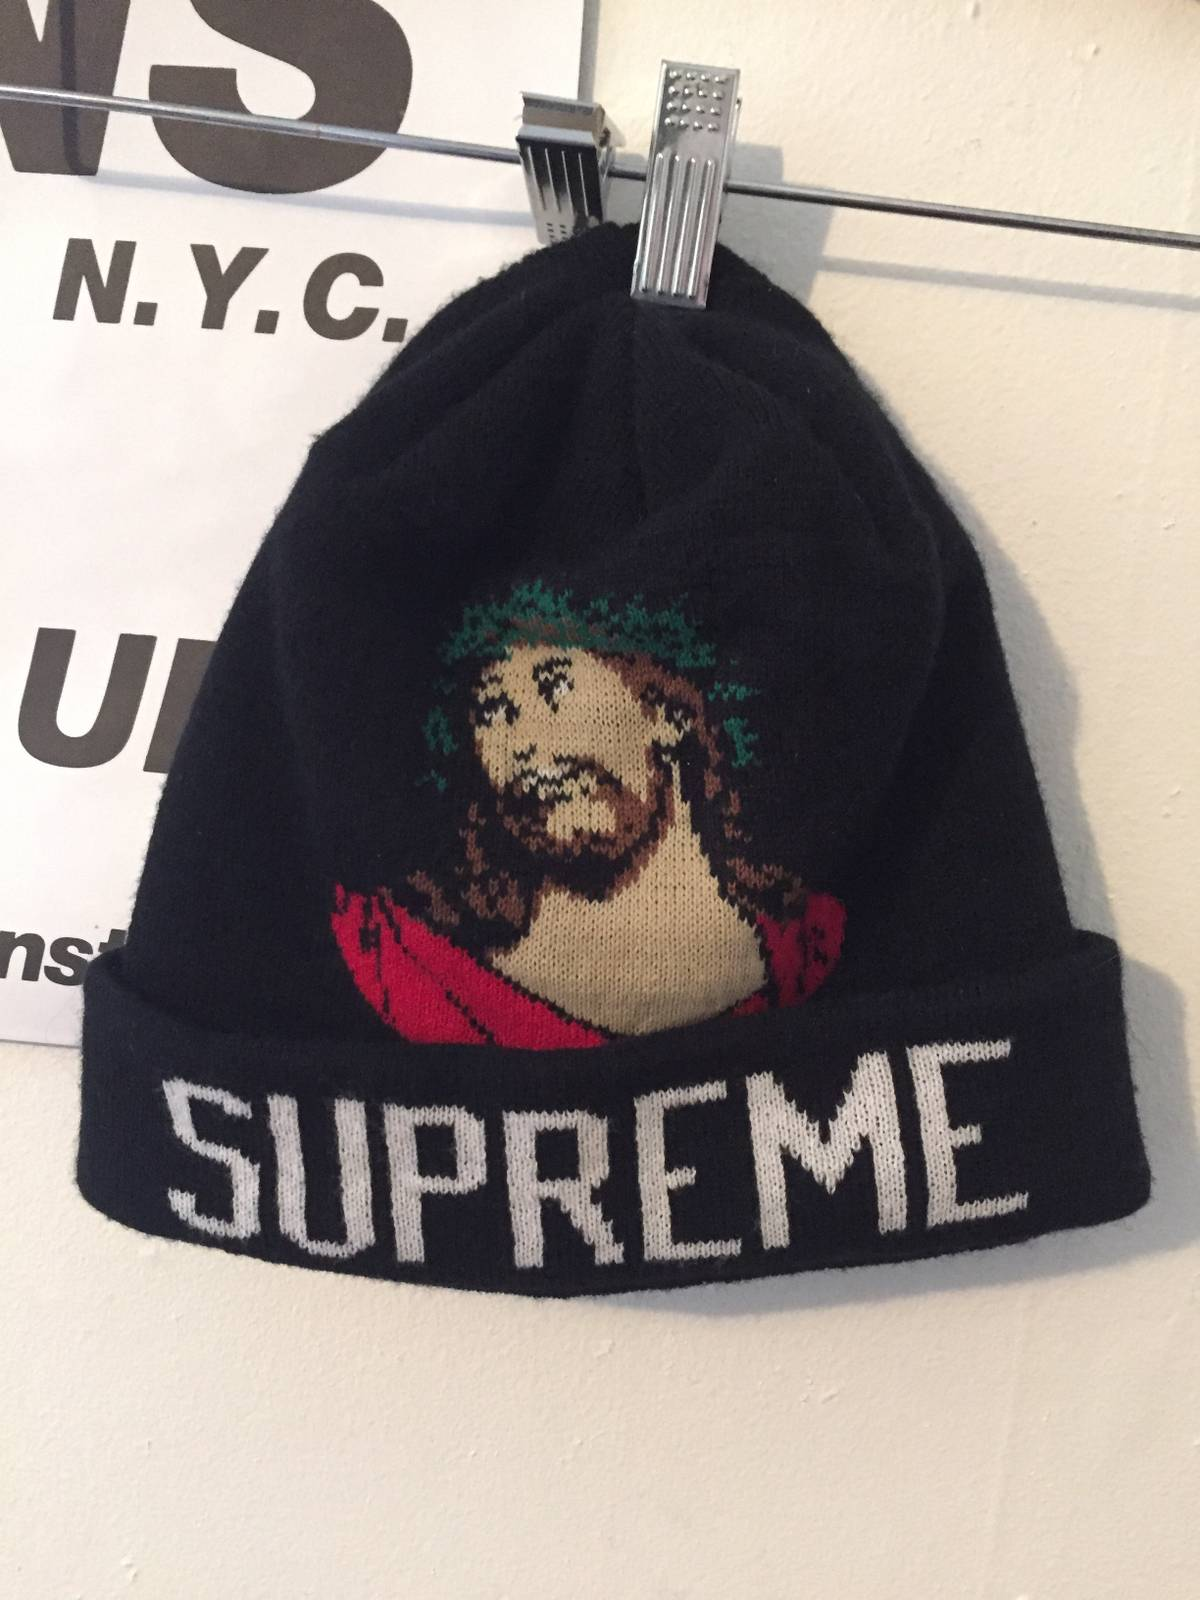 377589977f9 Supreme INRI beanie Size one size - Hats for Sale - Grailed